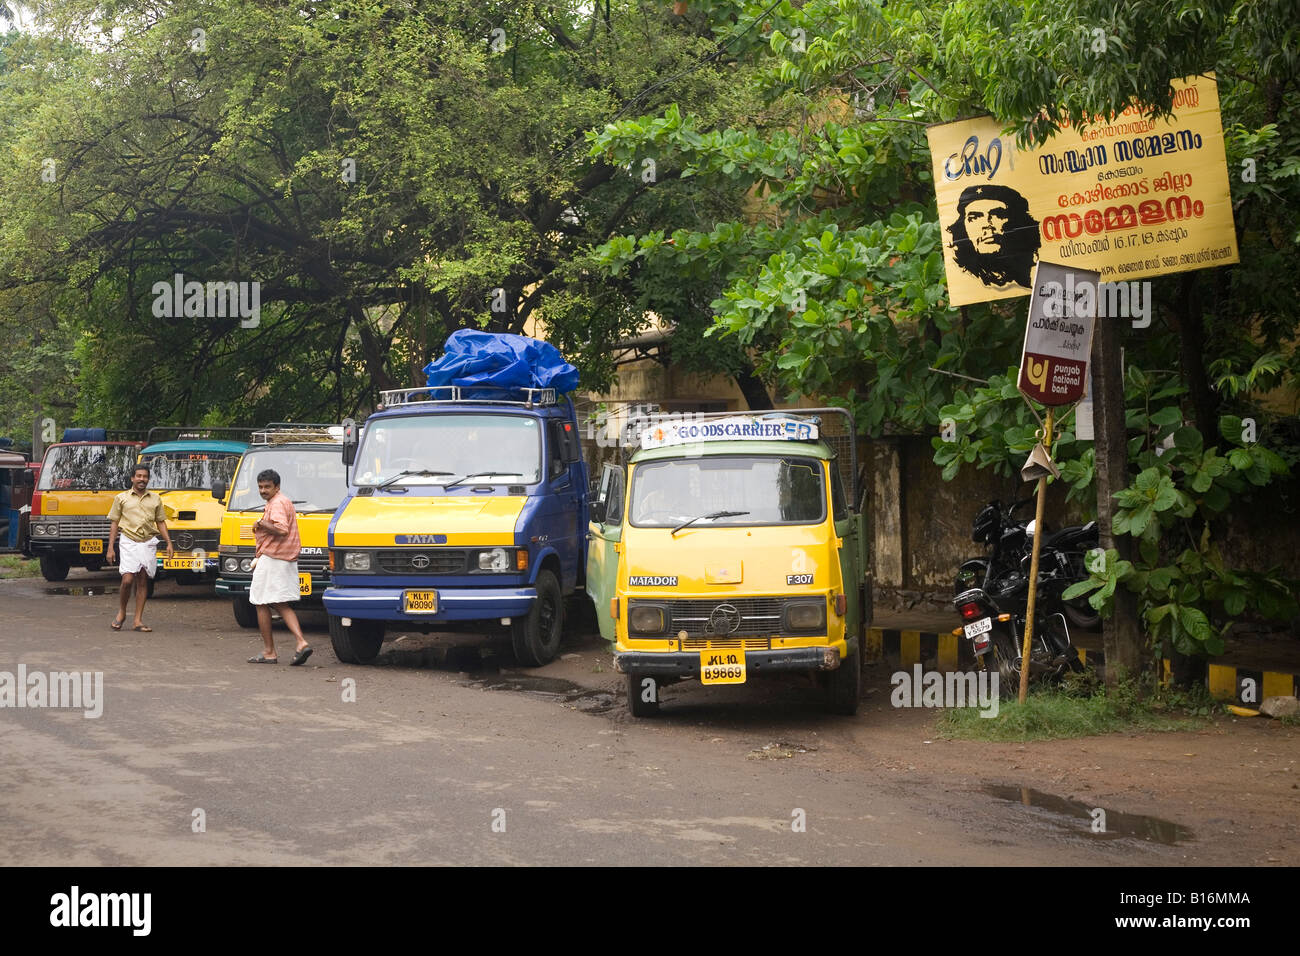 Trucks park near to the Big Bazar Road in Kozhikode. Men in dhotis walk past the parked vehicles. - Stock Image